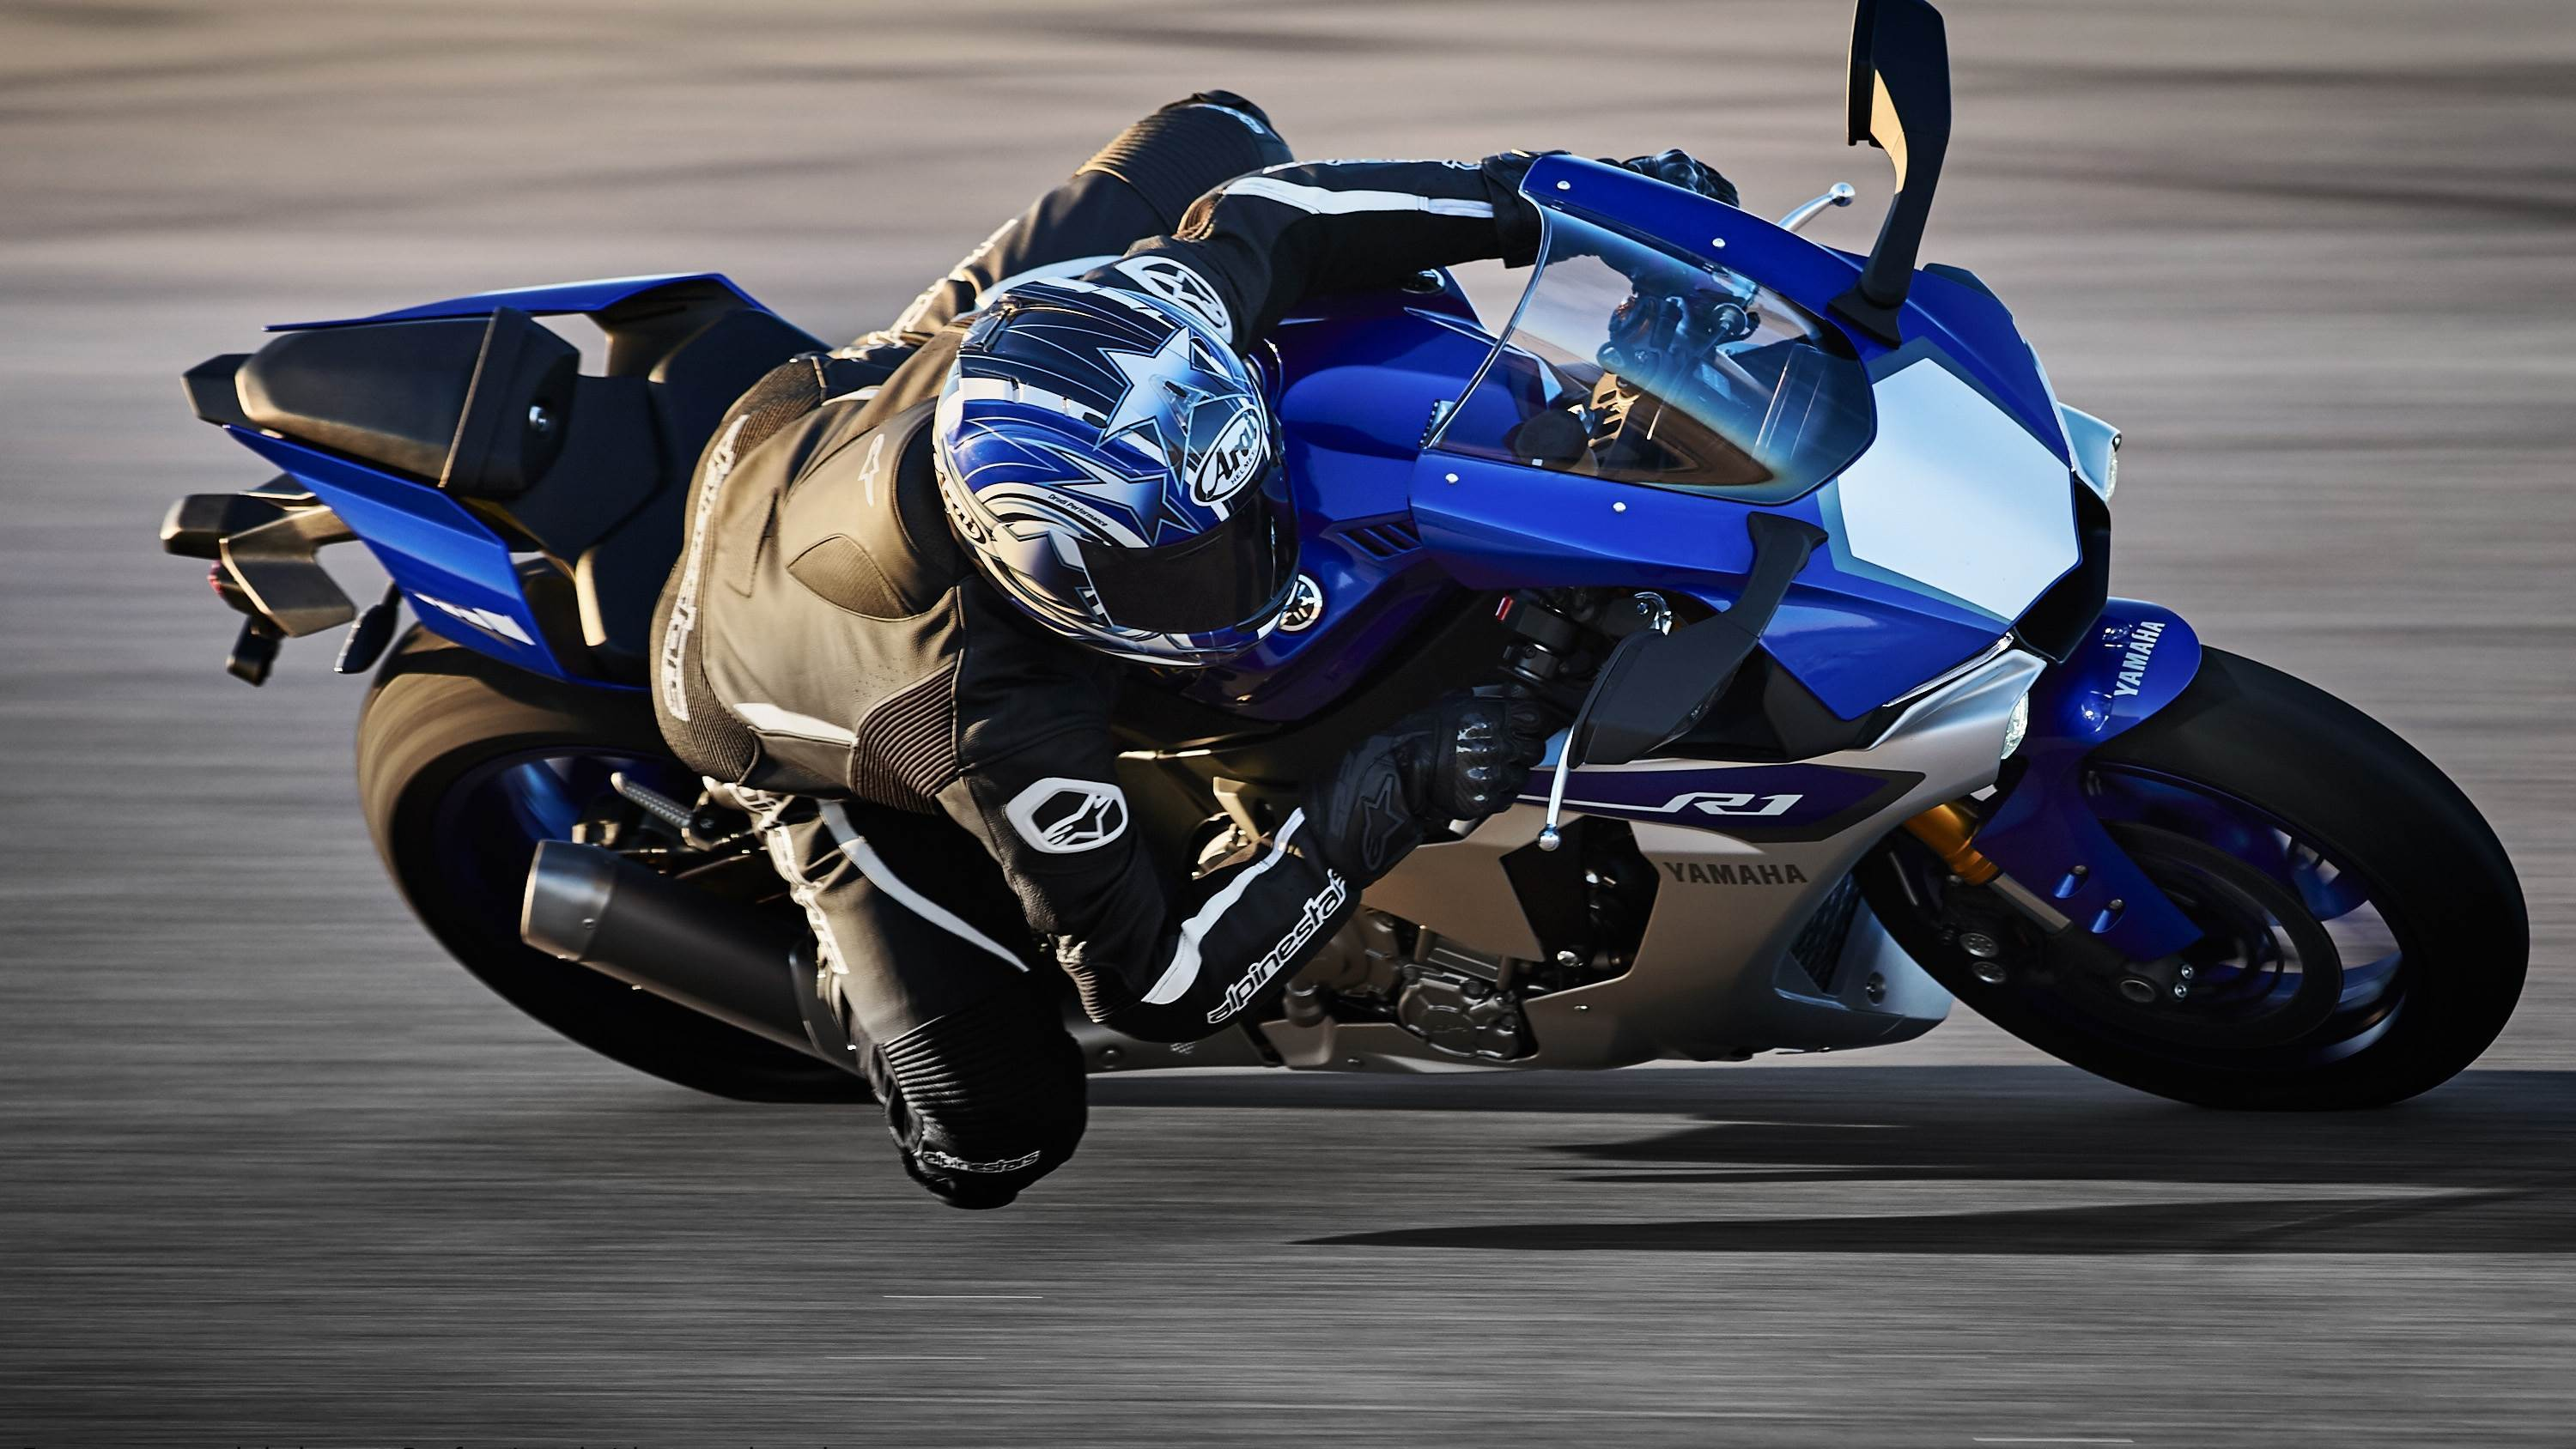 2015 yamaha r1 r1 m hd wallpapers. Black Bedroom Furniture Sets. Home Design Ideas